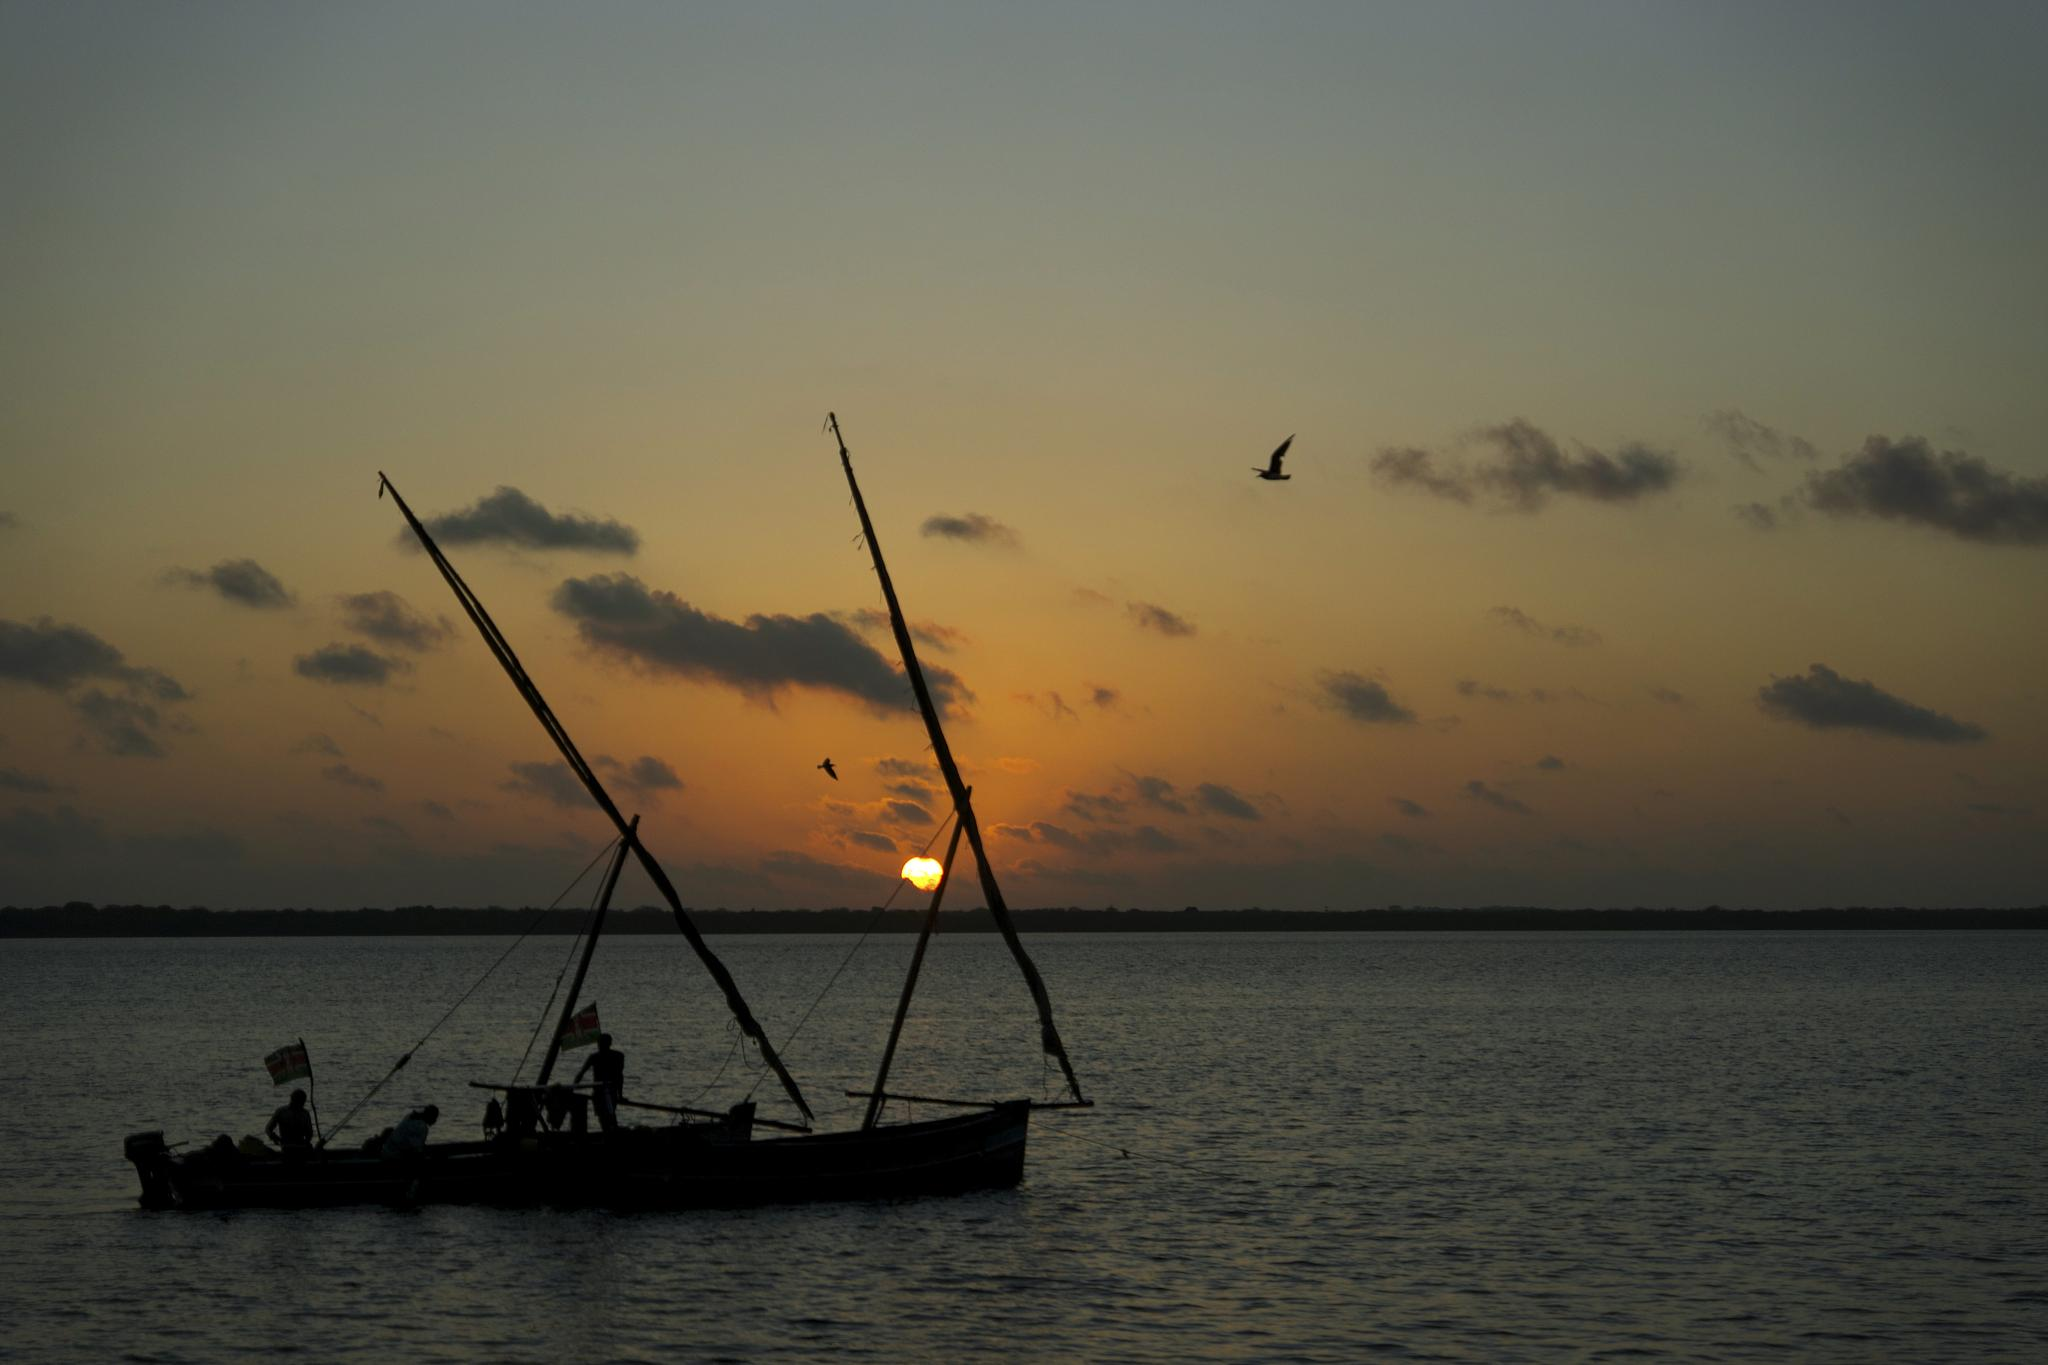 Lamu morning by Tihomir Trichkov